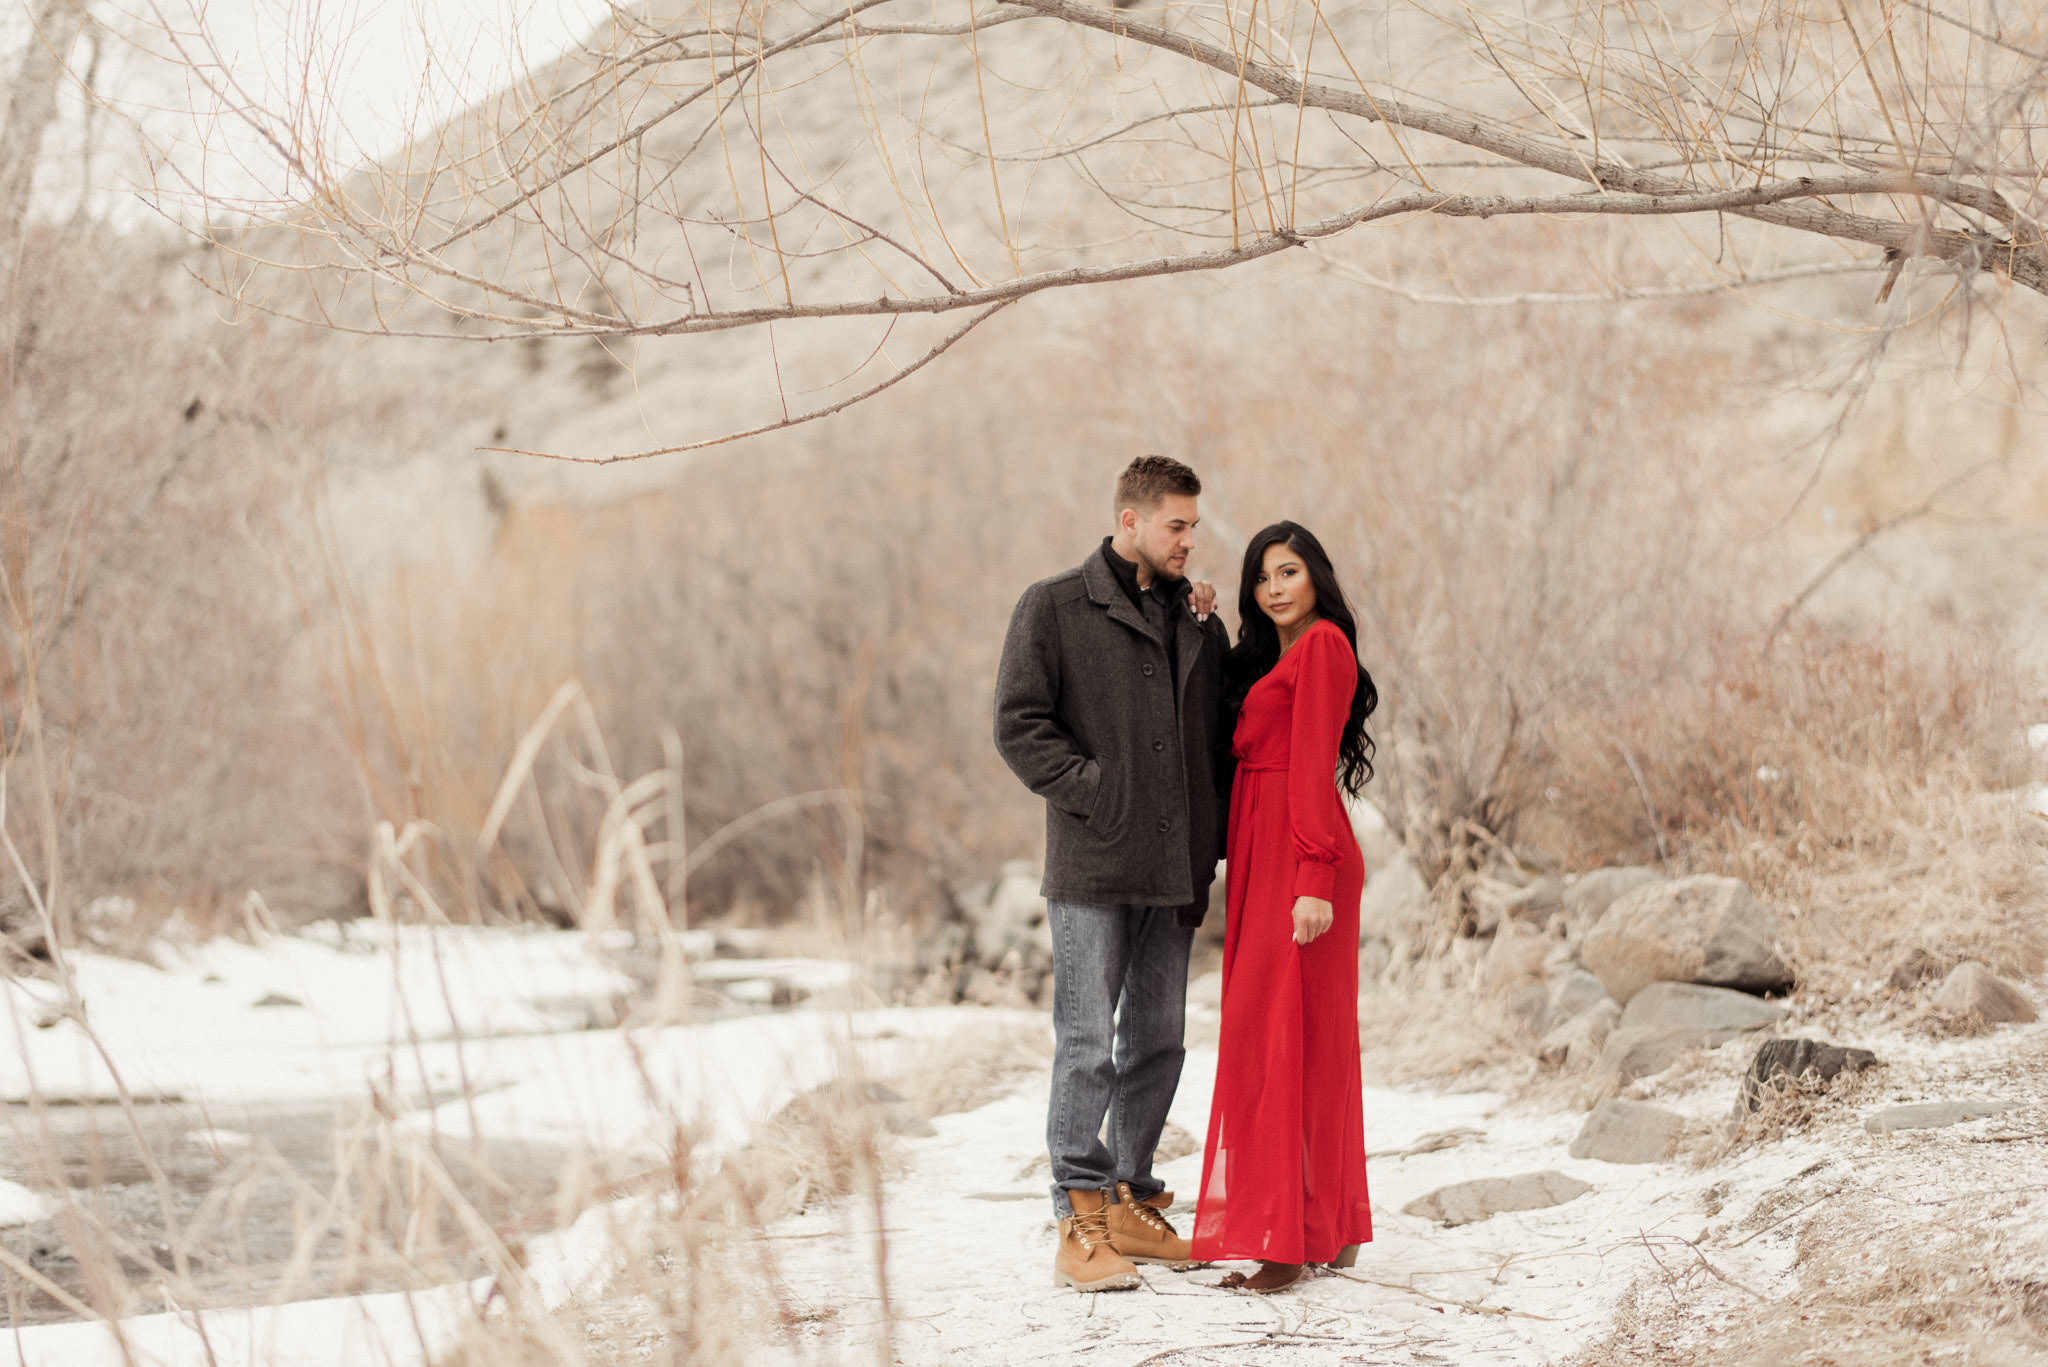 sandra-ryan-colorado-winter-snow-engagement-couples-valentines-red-houston-photographer-sm-22.jpg